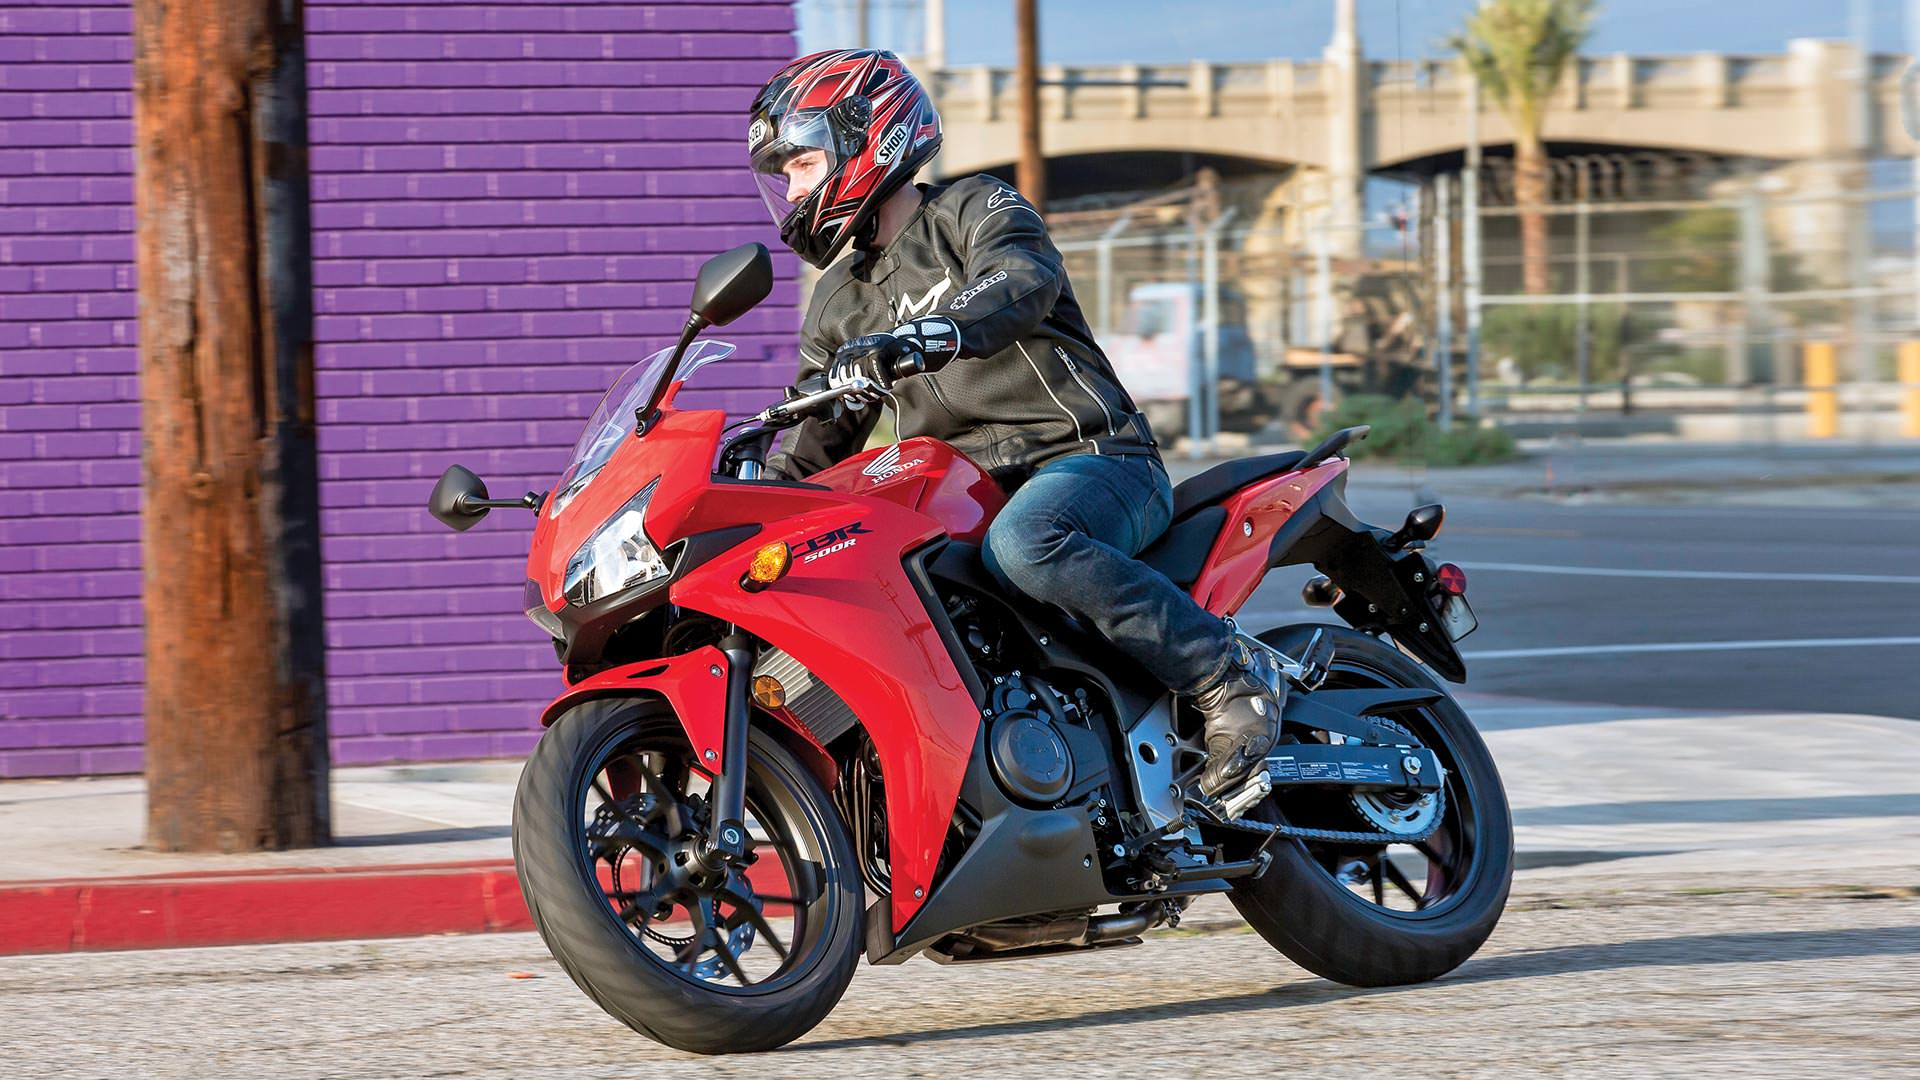 Bike sport: features and types of sports motorcycles